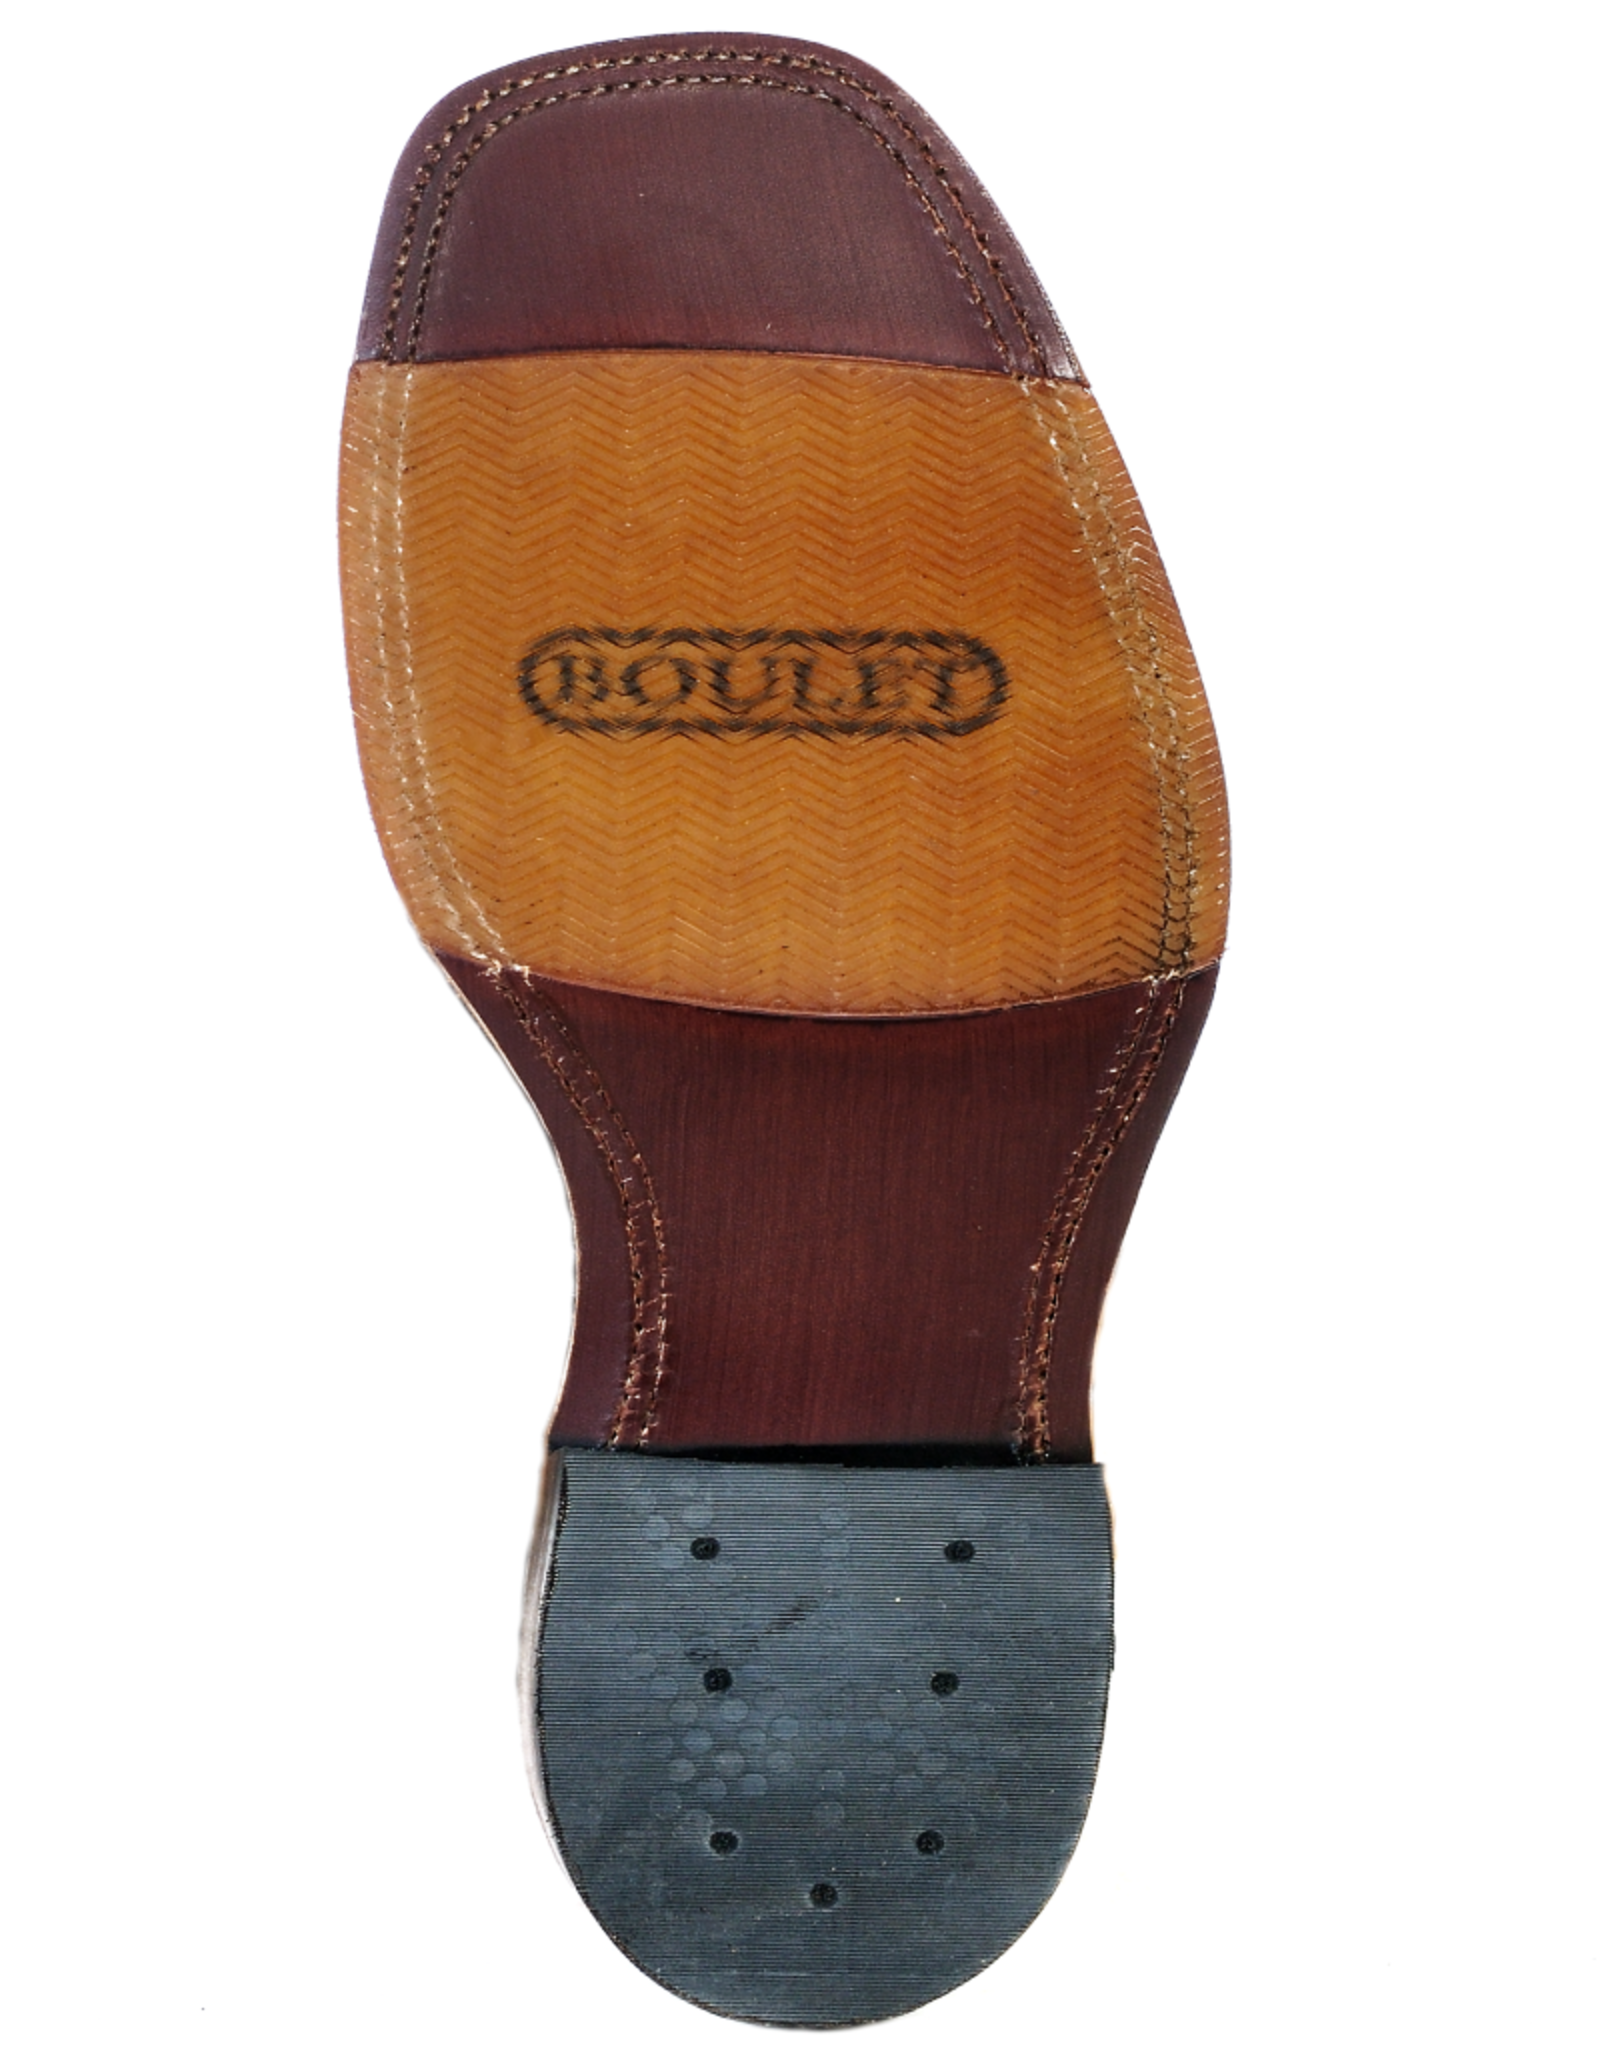 Boulet Boulet Square Toe Injected Leather Sole Boots